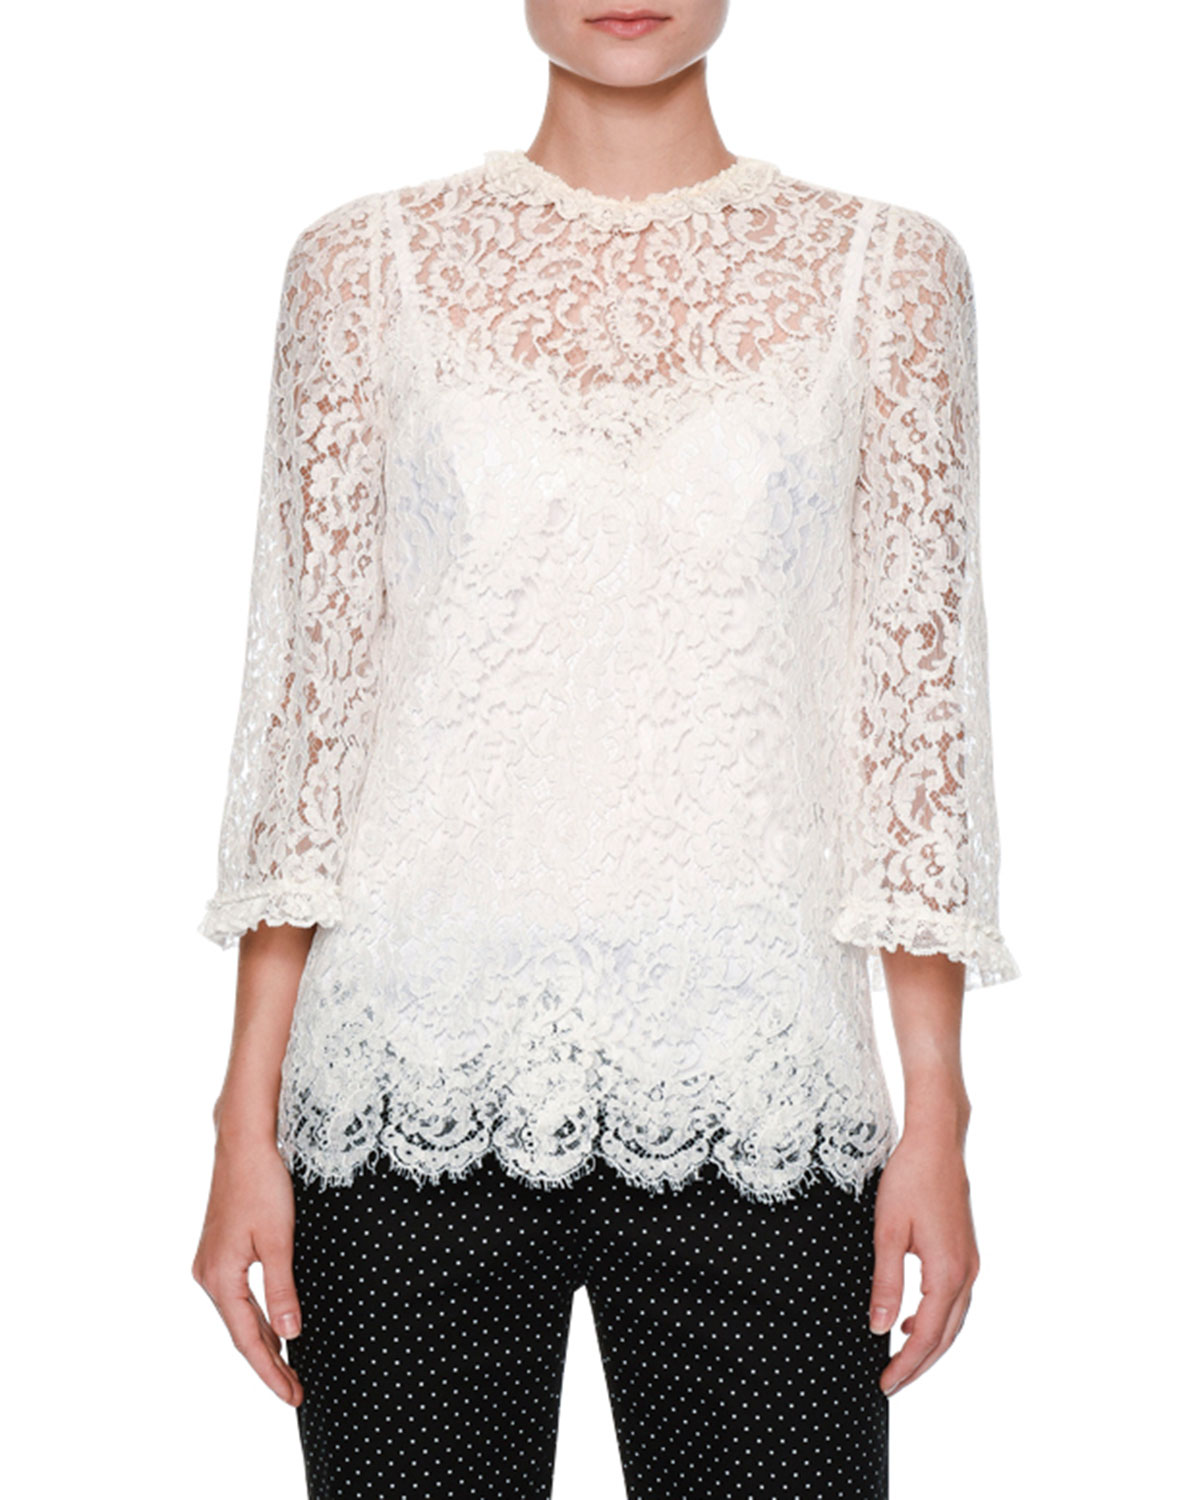 Dolce & Gabbana Tops FLORAL-LACE 3/4-SLEEVE RUFFLED BLOUSE, WHITE